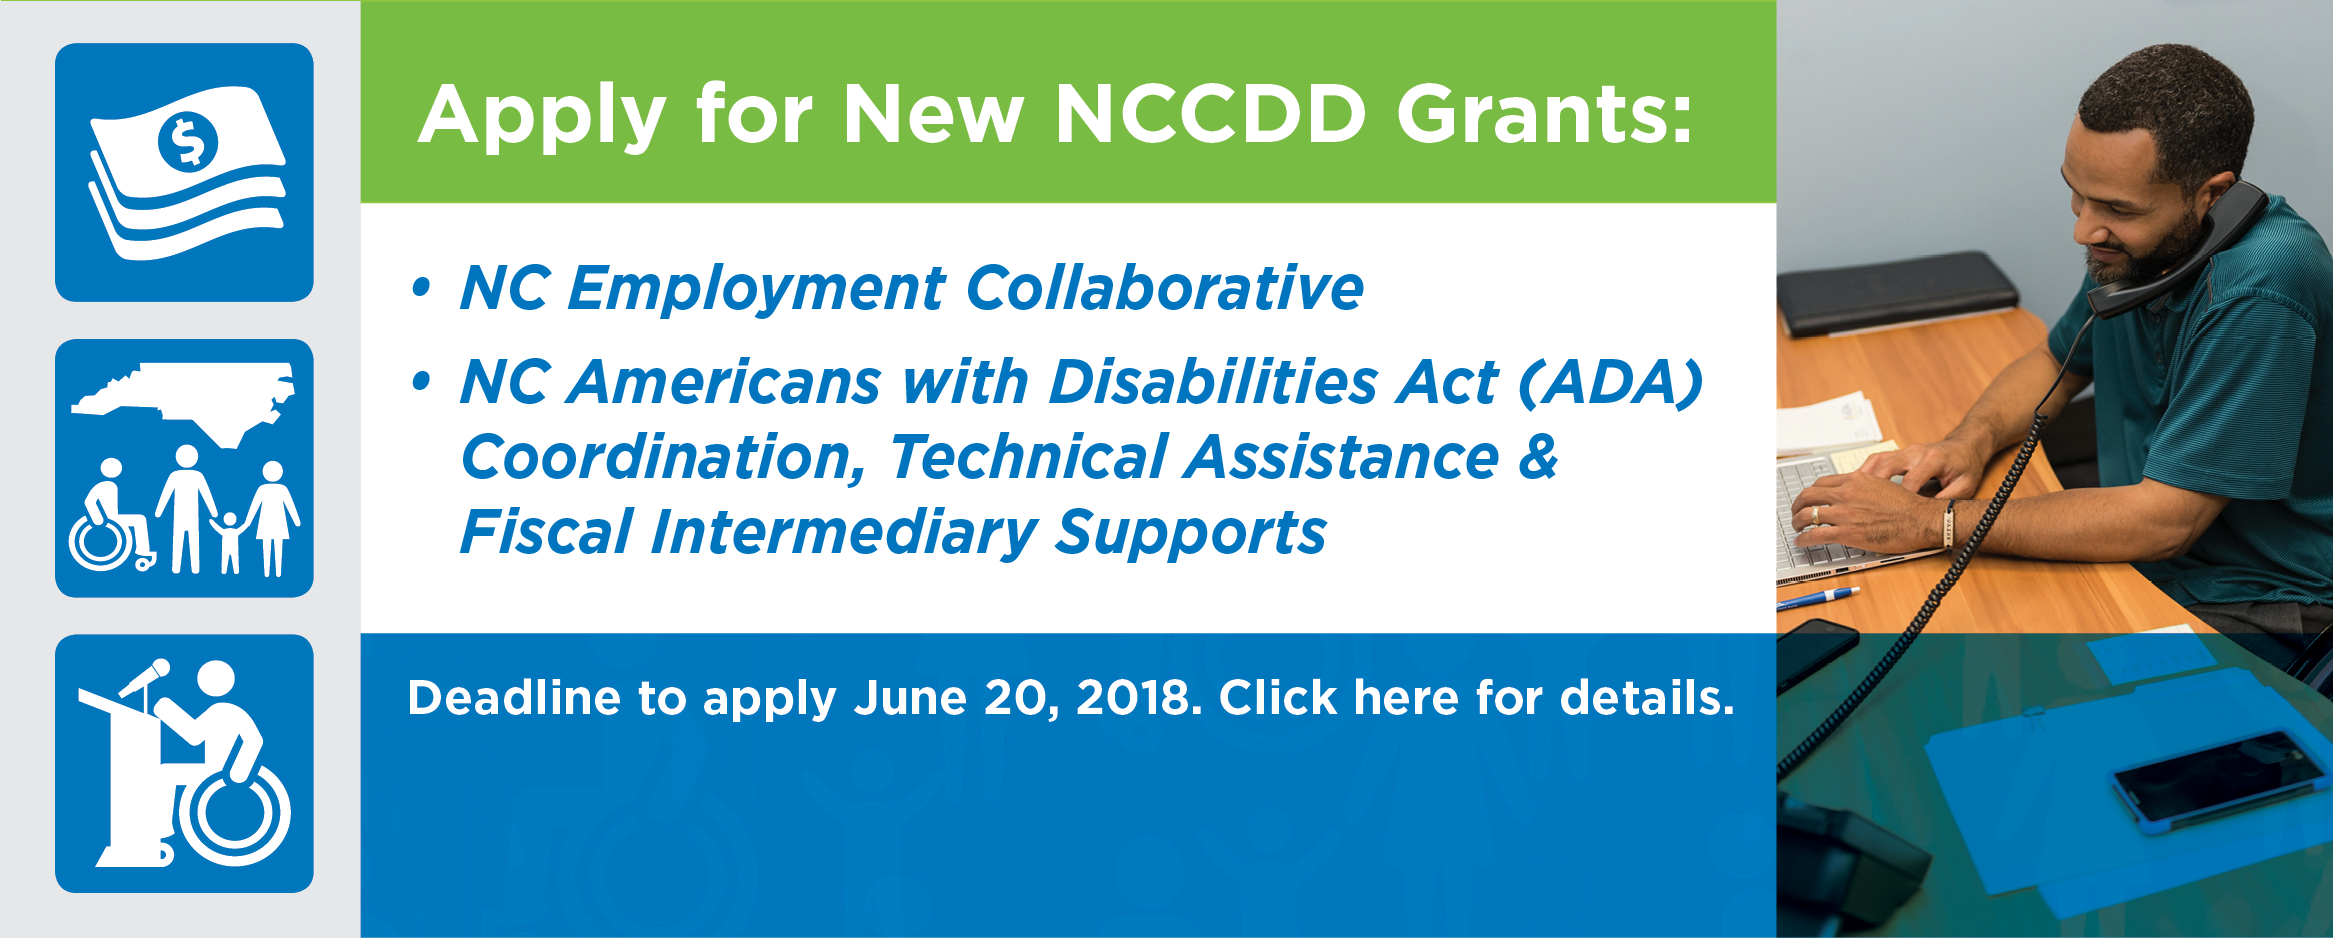 Announcing NewApply for New NCCDD Grants NCCDD Grant Opportunity: Supported Living: Making the Difference. Click here to Apply. Special Alert:  Due to weather delays, deadline extended to Oct. 12!